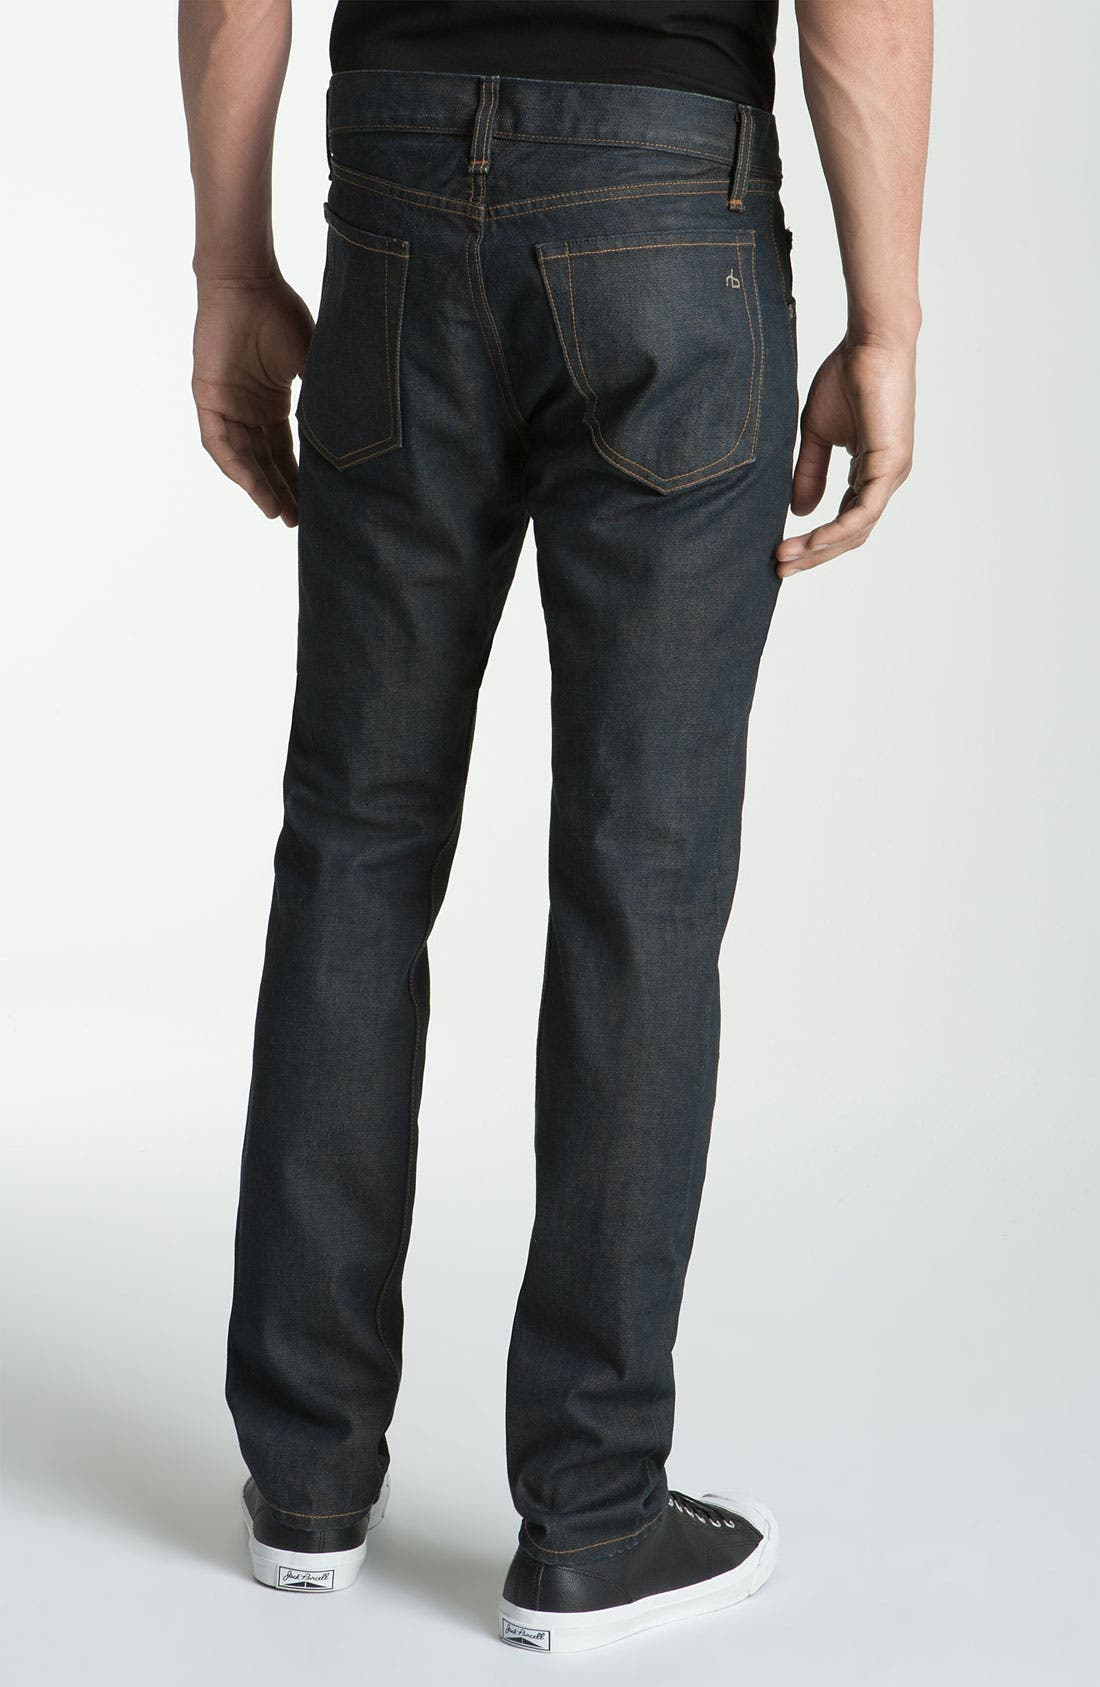 Alternate Image 1 Selected - rag & bone 'RB15X' Slim Straight Jeans (Olive One Year Wash)